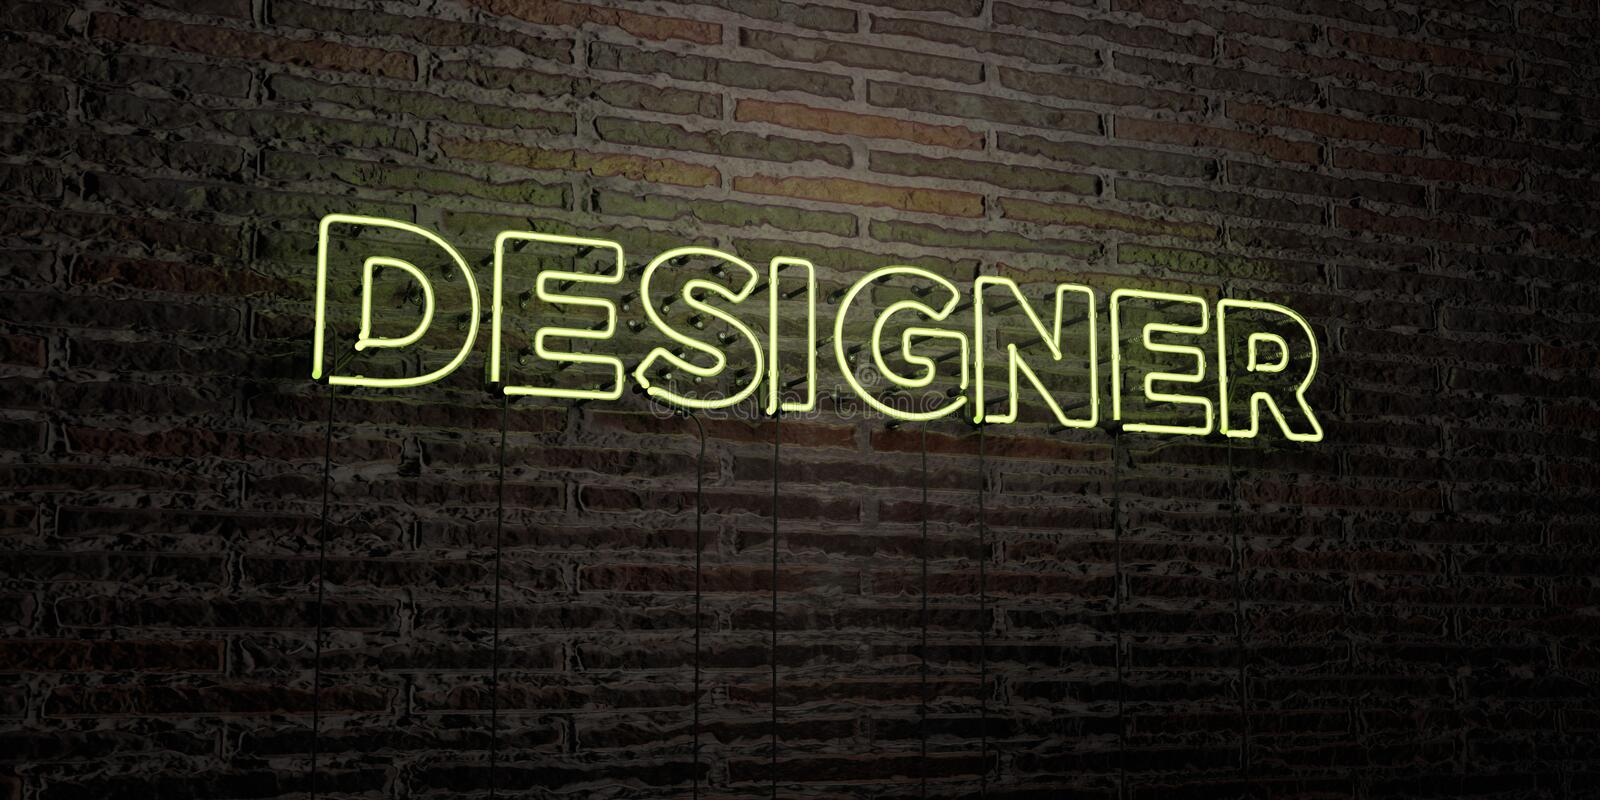 DESIGNER -Realistic Neon Sign on Brick Wall background - 3D rendered royalty free stock image vector illustration